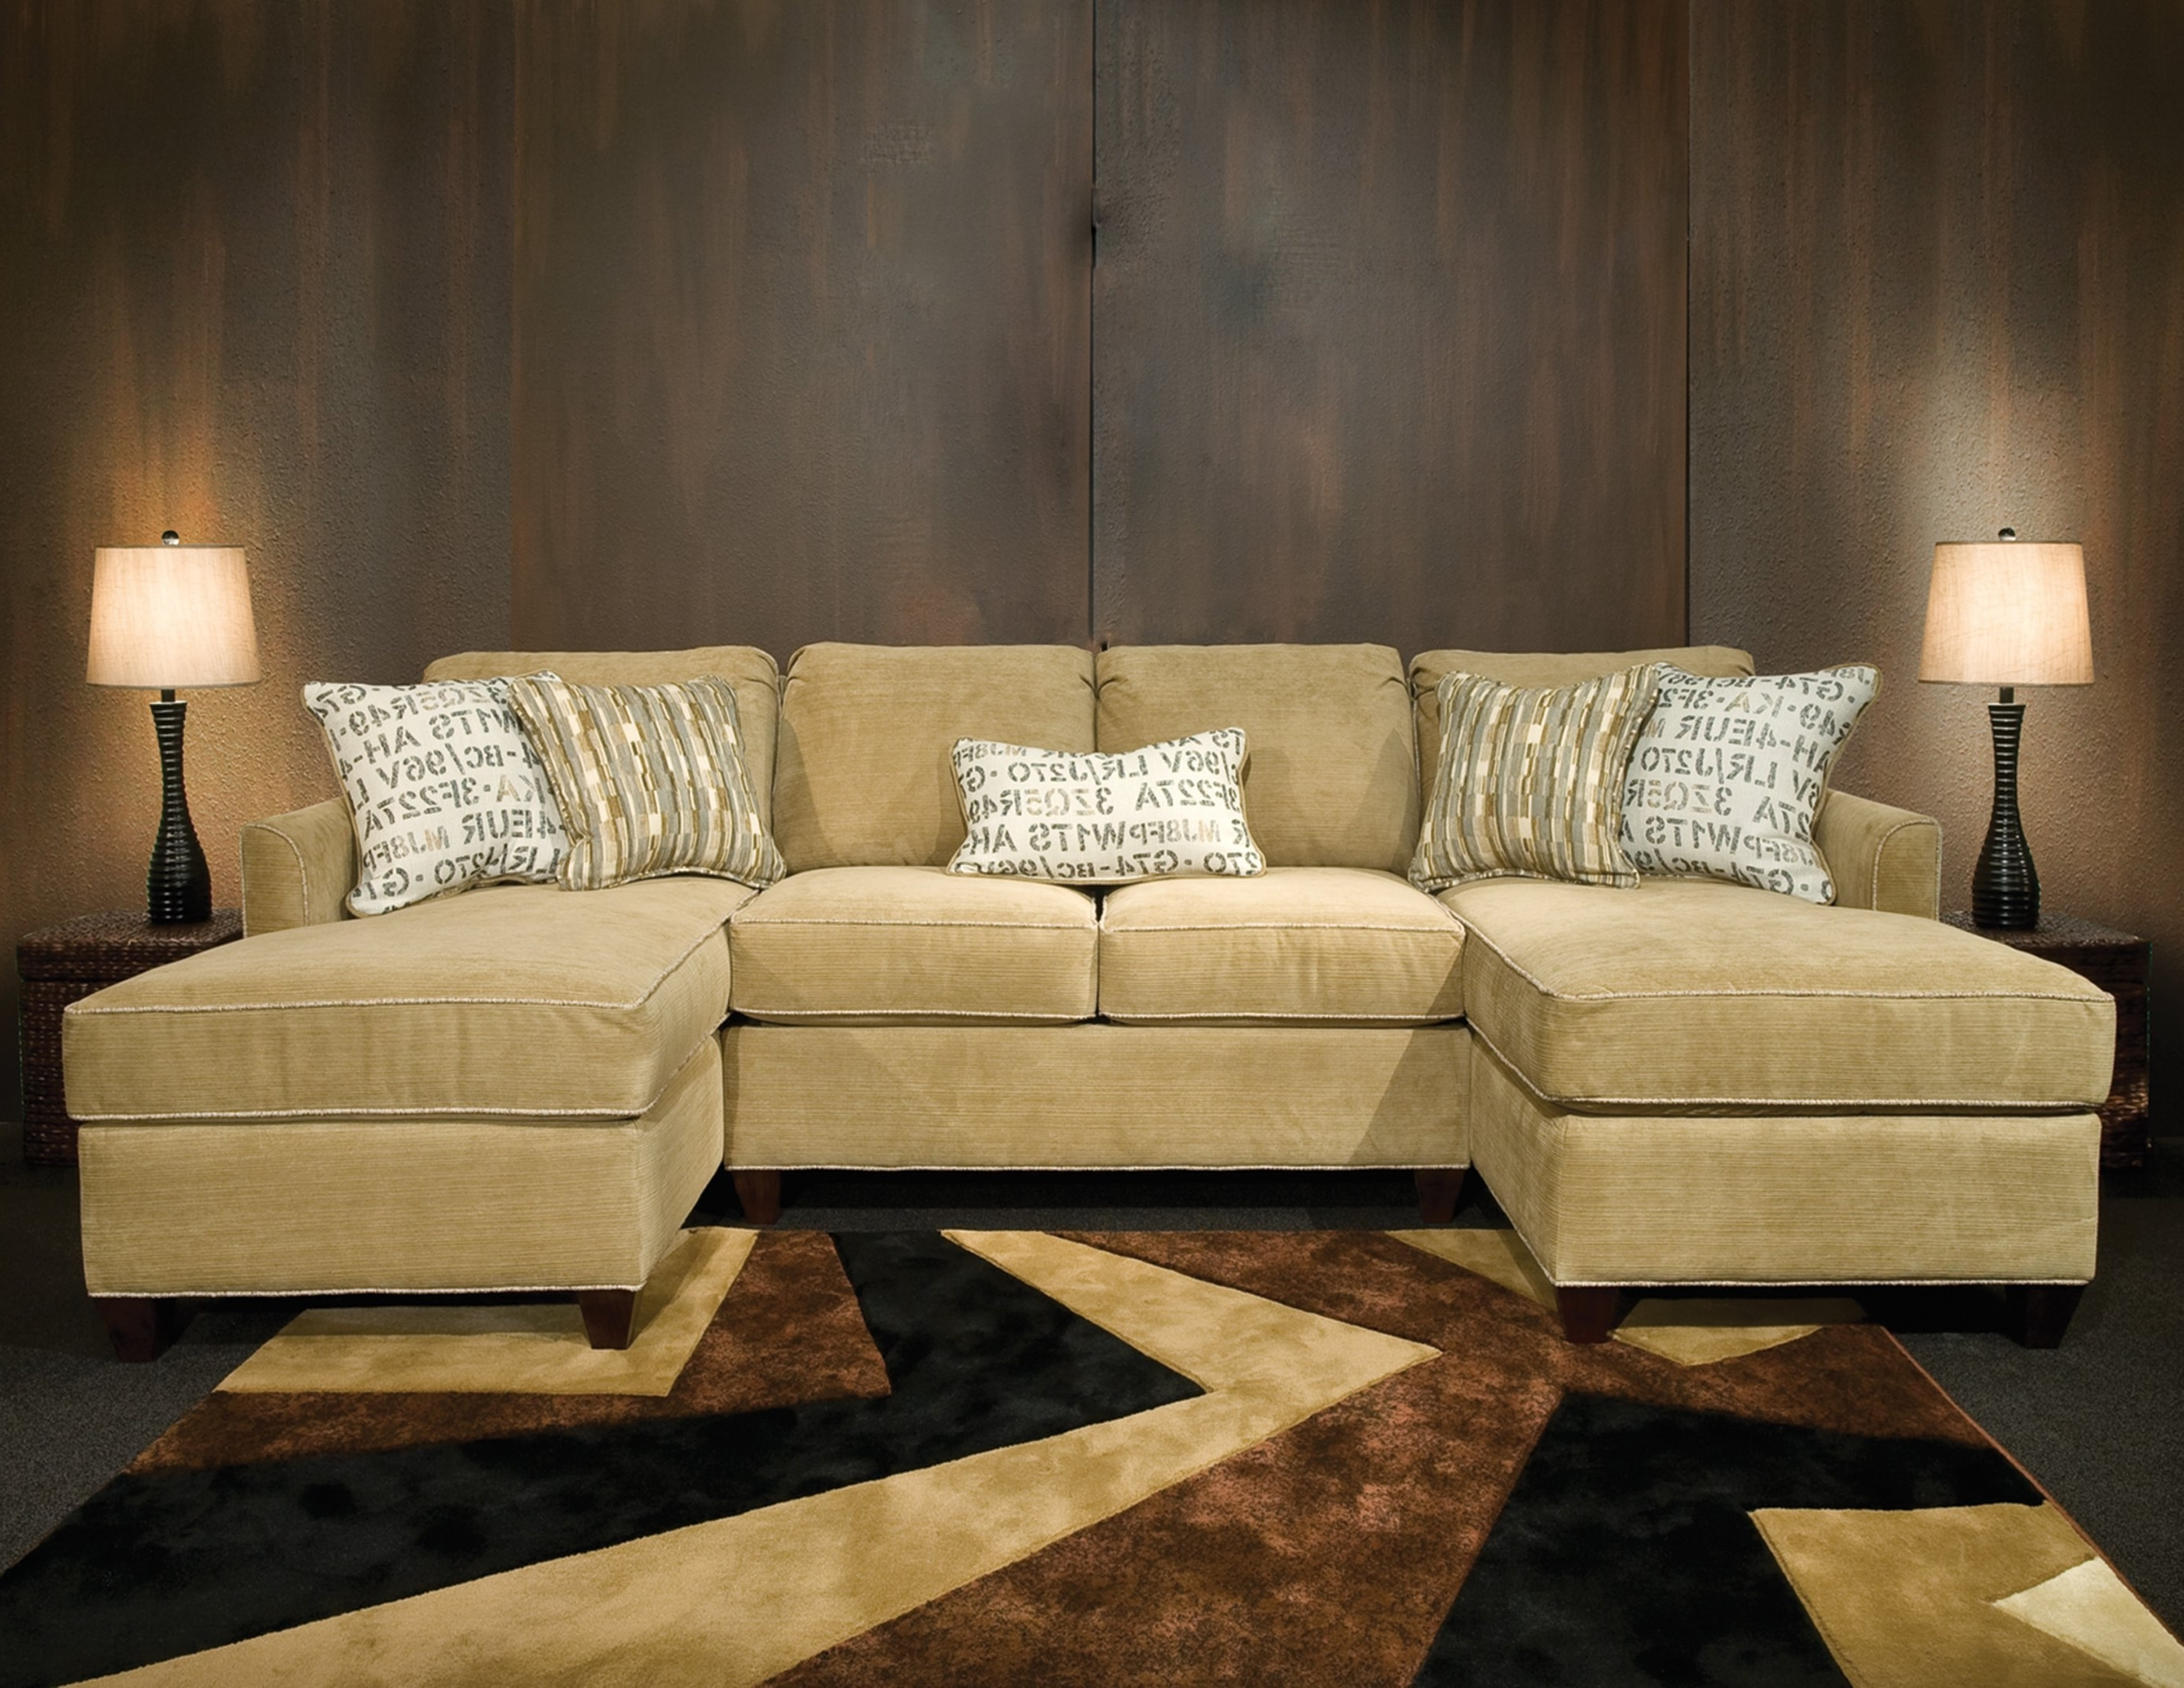 Popular Double Chaise Sofas In Double Chaise Lounge Sofa 15 In Sofas And Couches Ideas Regarding (View 11 of 15)